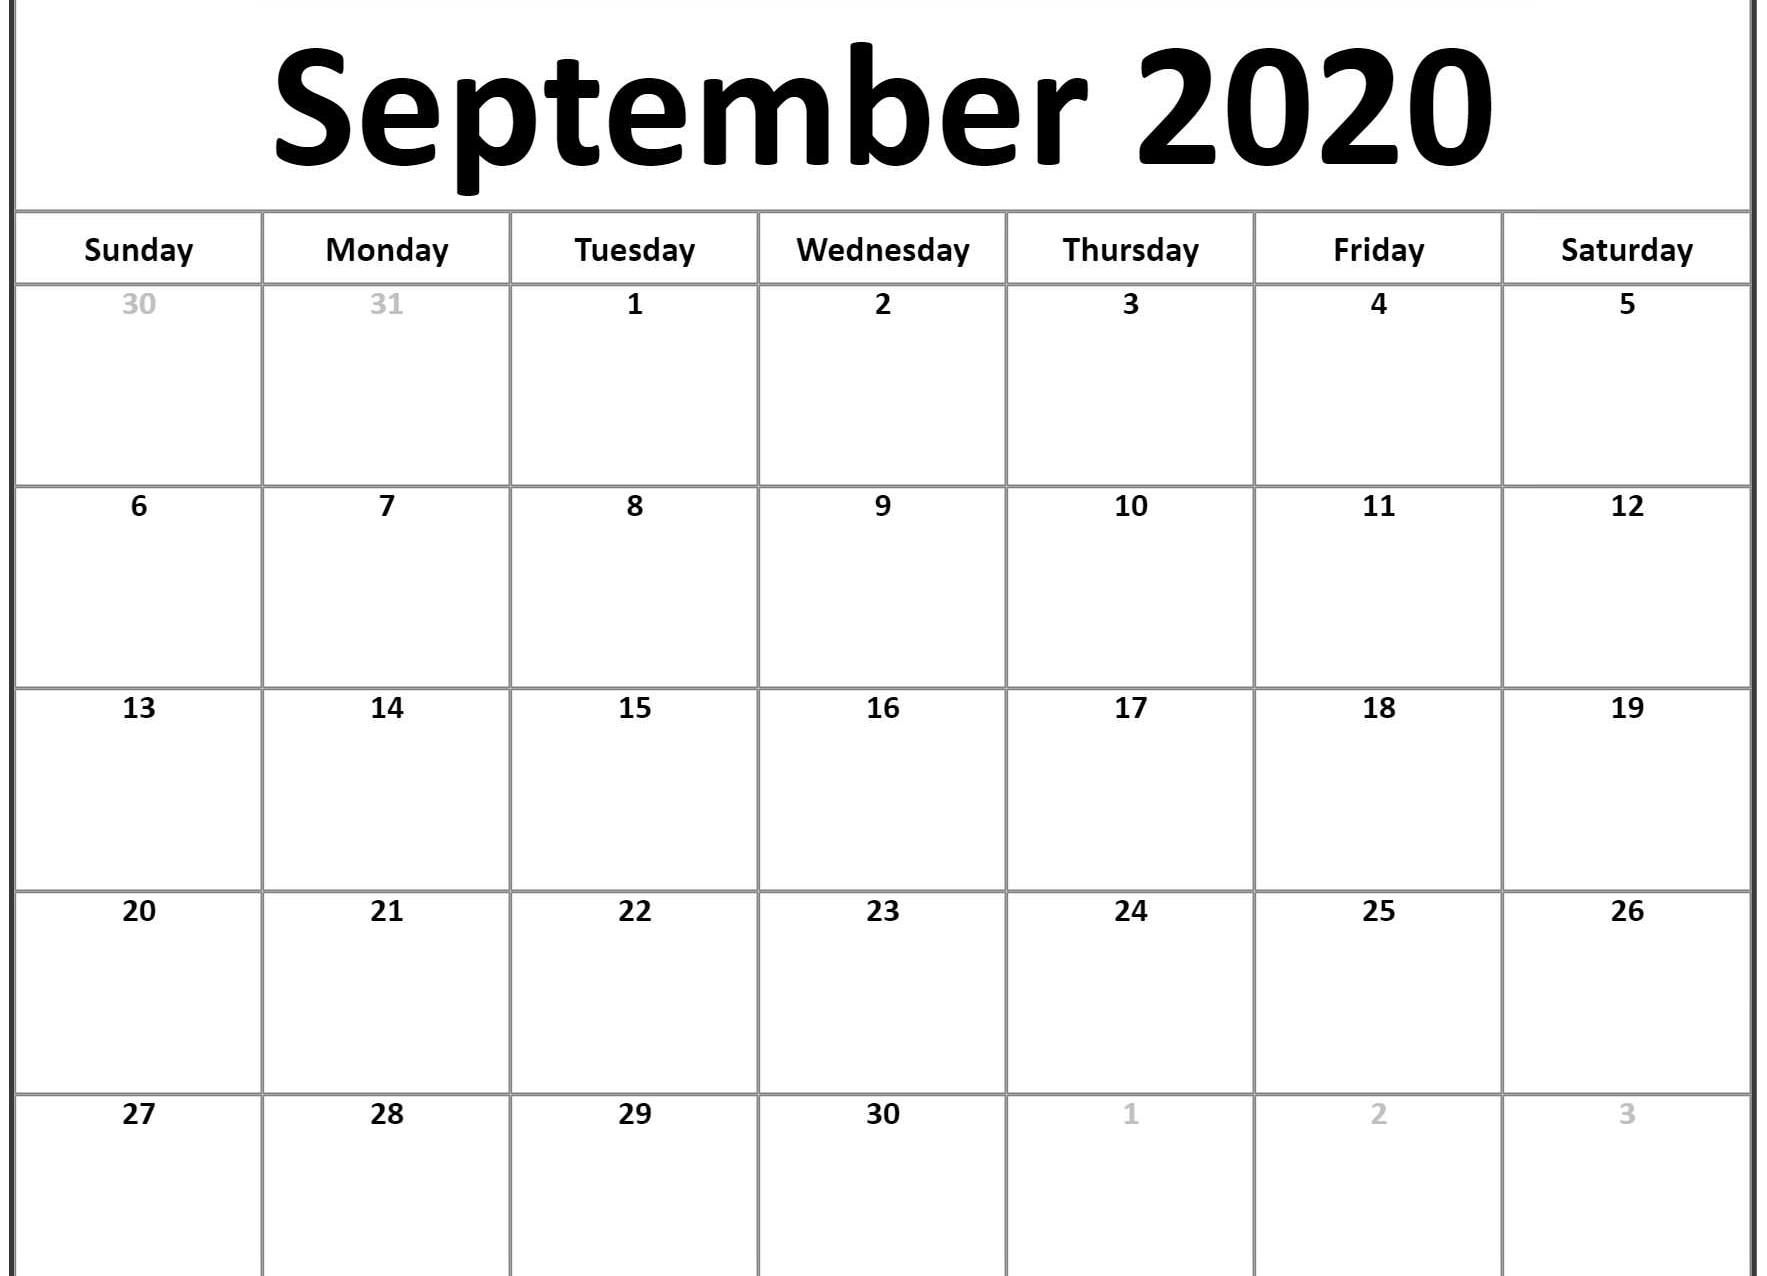 September 2020 Calendar Template | Calendar Word, Calendar inside Calendar August And September 2020